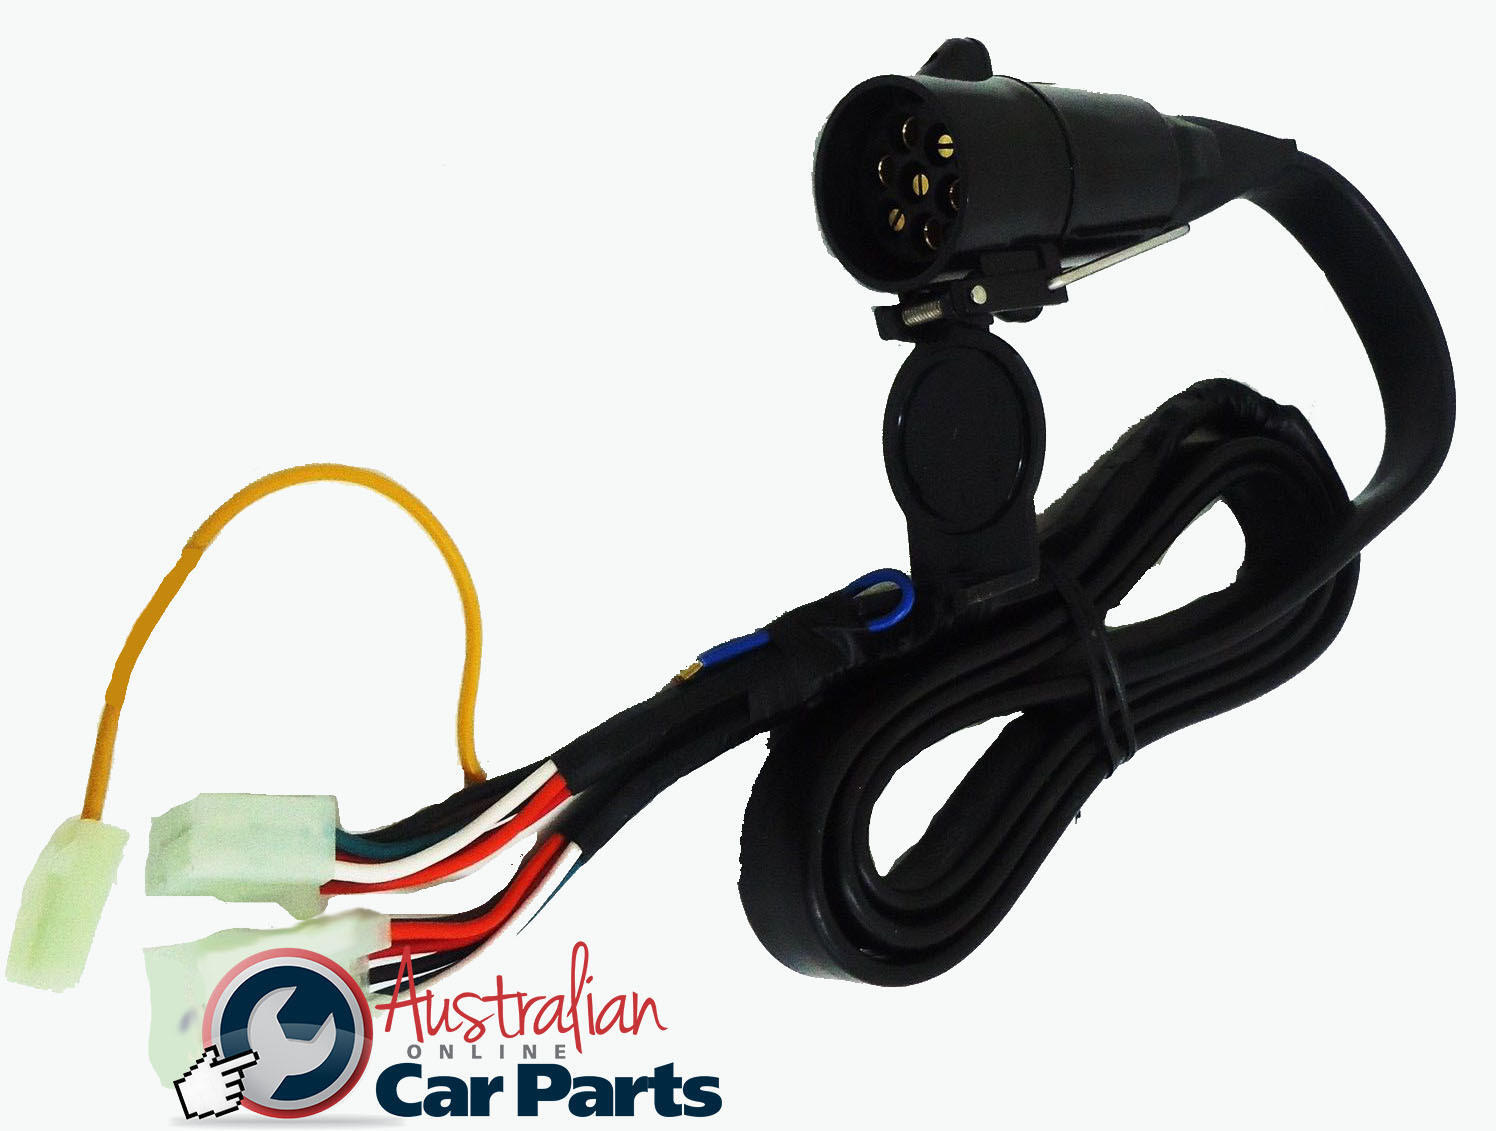 hight resolution of trailer wiring harness suitable for holden commodore vt vx vy vz chevy truck wiring harness trailer